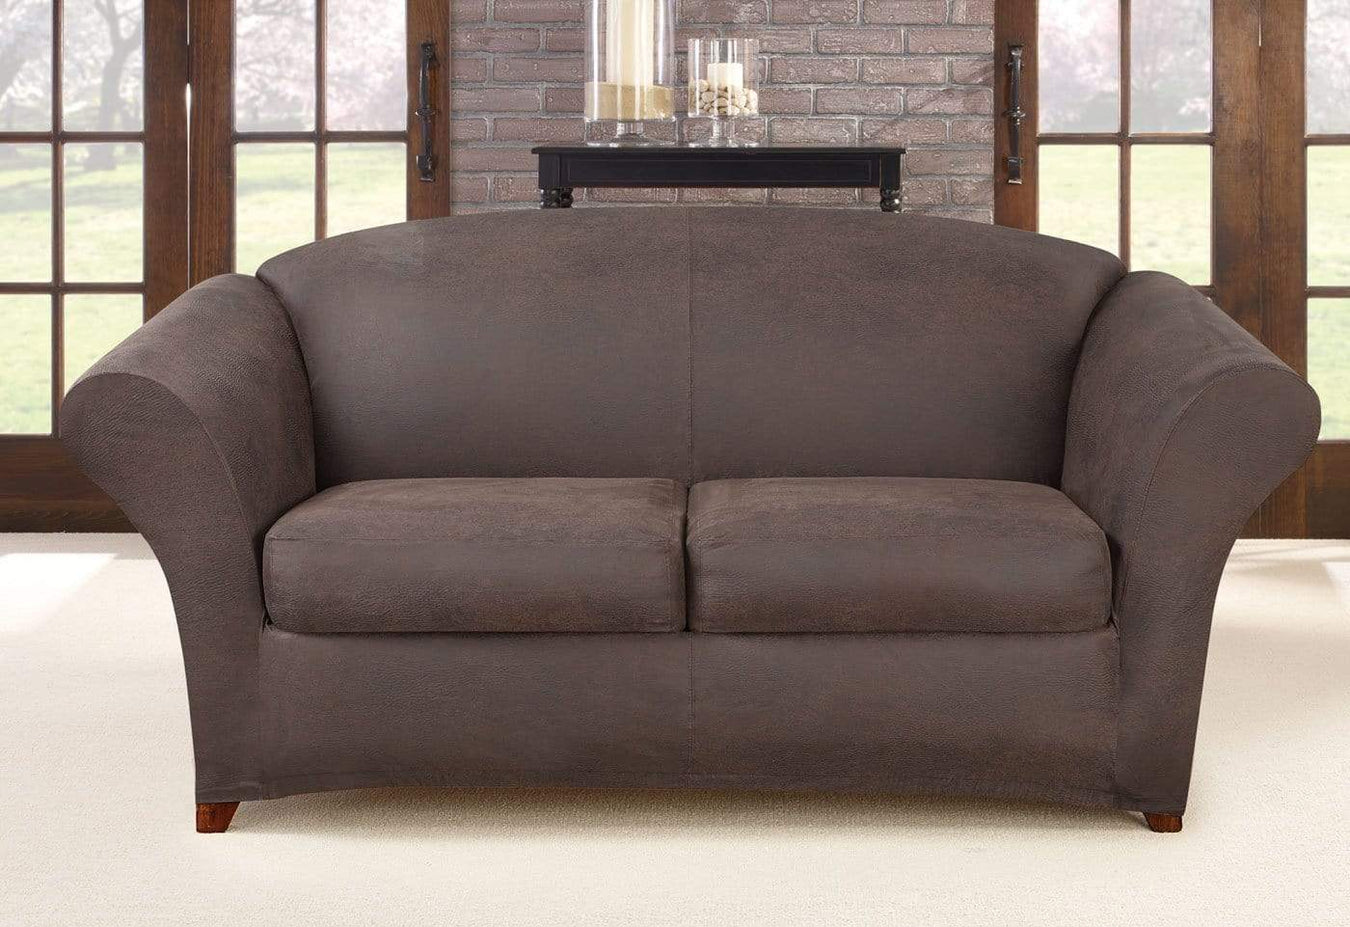 Ultimate Heavyweight Stretch Leather Three Piece Loveseat Slipcover Weathered Saddle